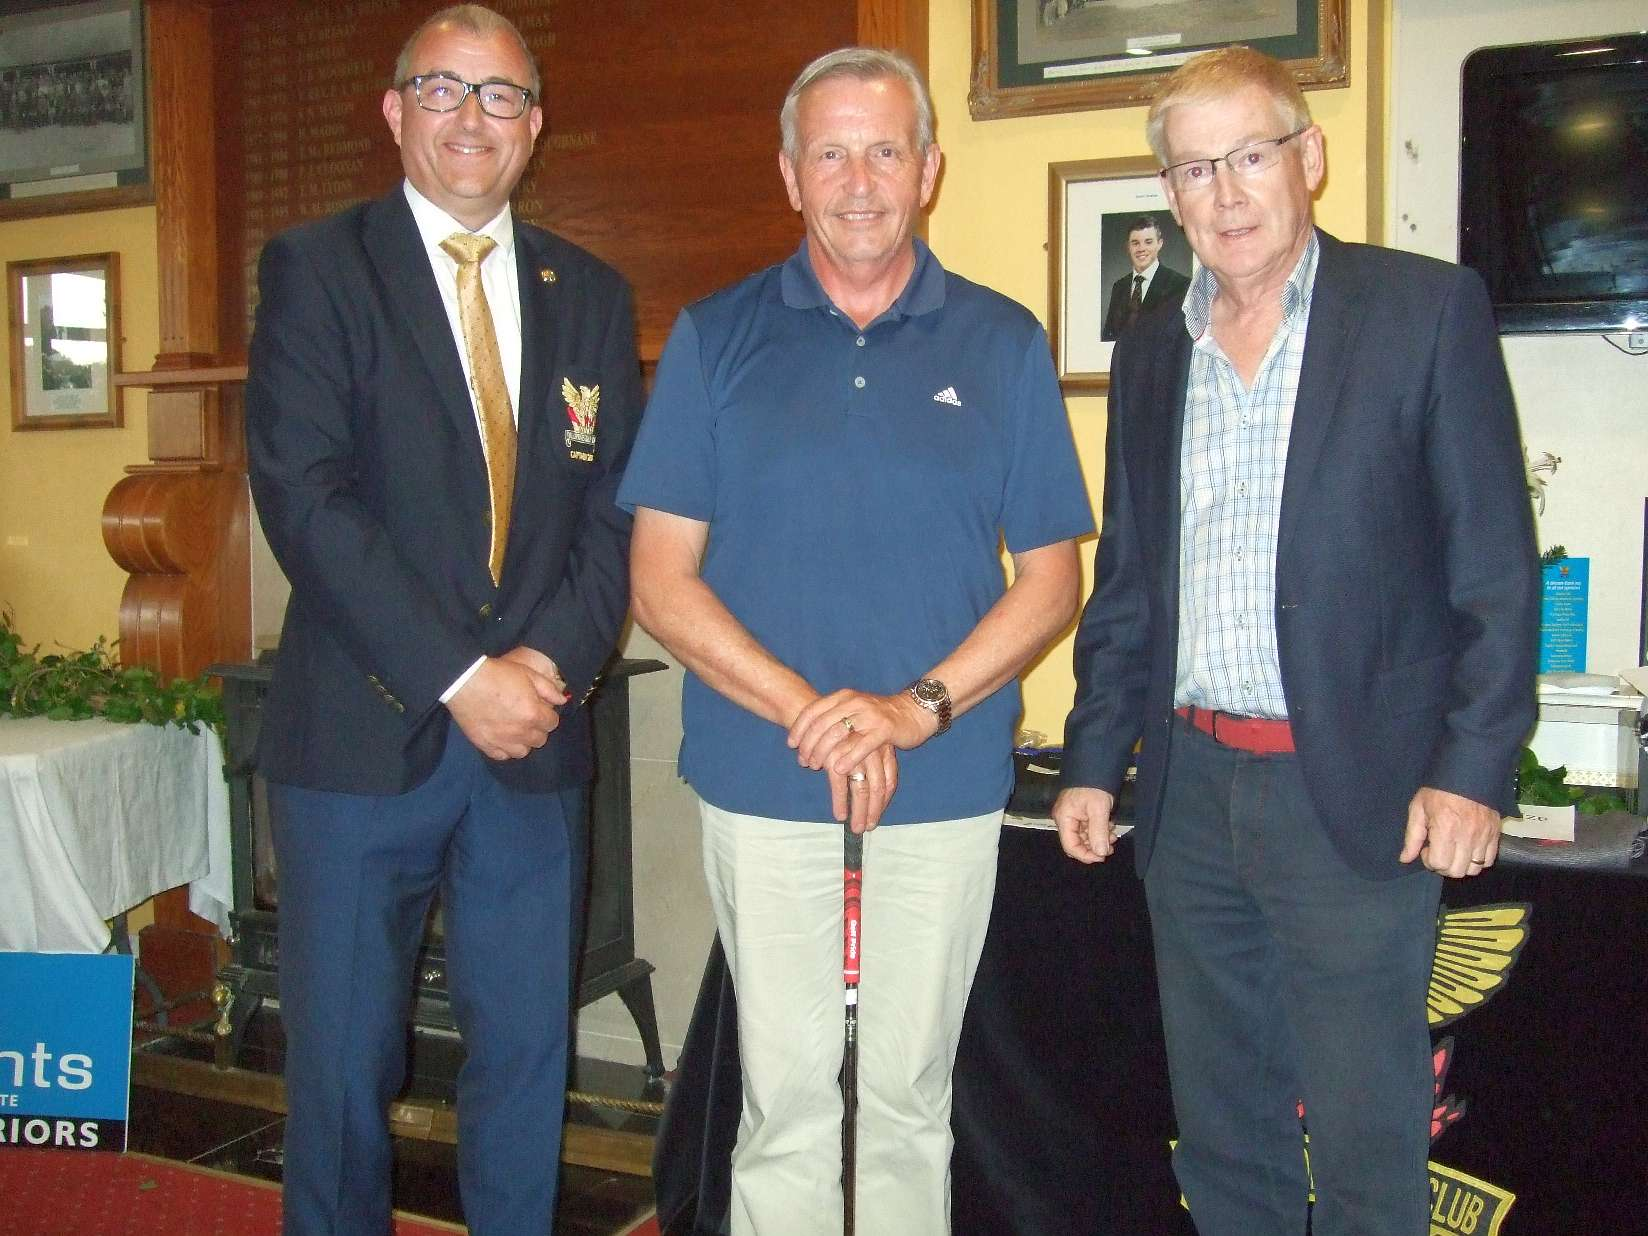 Dave Lawlor representing his son Dan who was 2nd in the Lambe Oil Prize with Peter Waters representing the Sponsors and Captain Brian Gunning